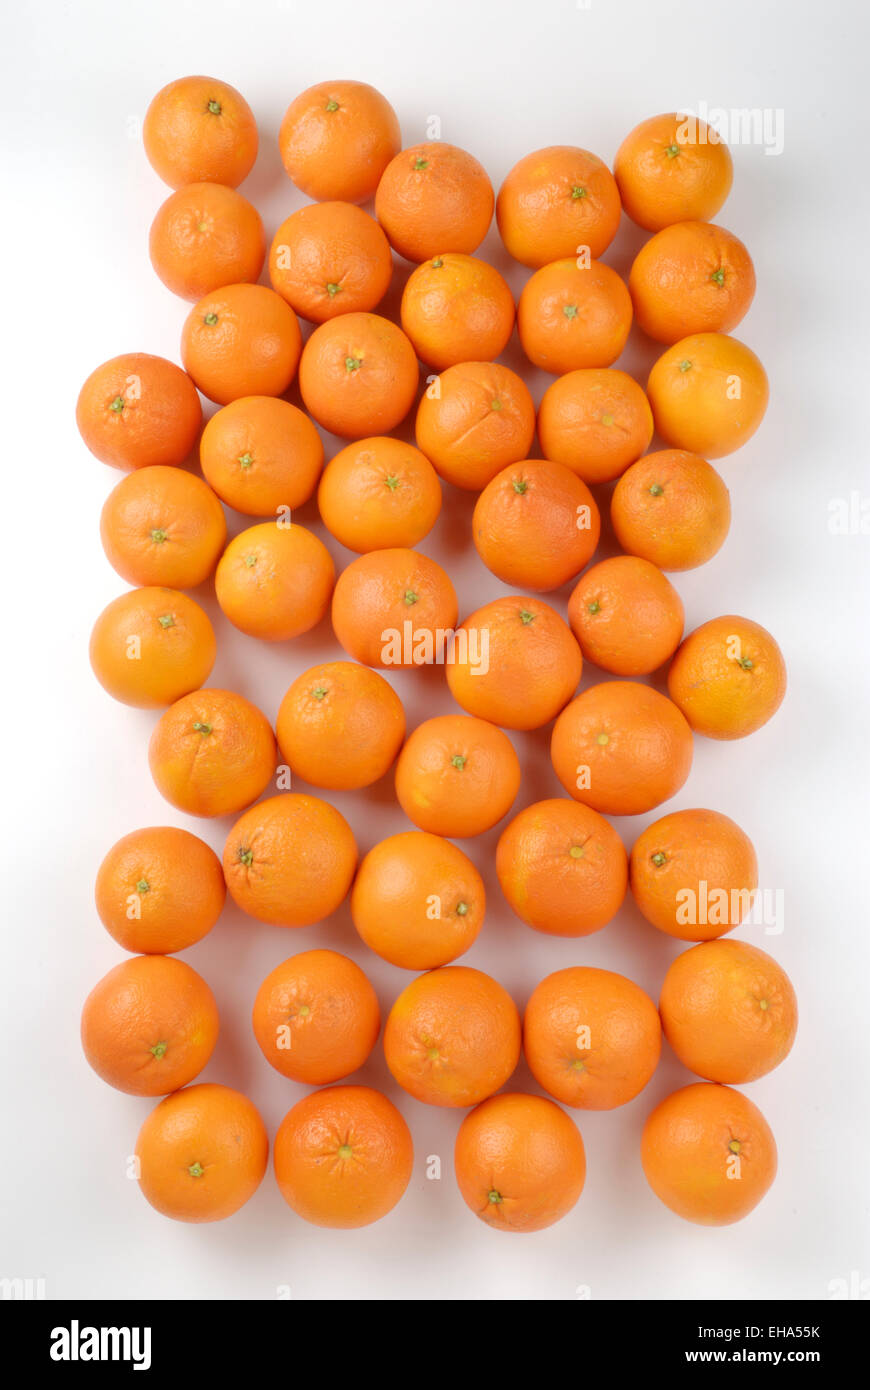 many oranges seen from above - Stock Image